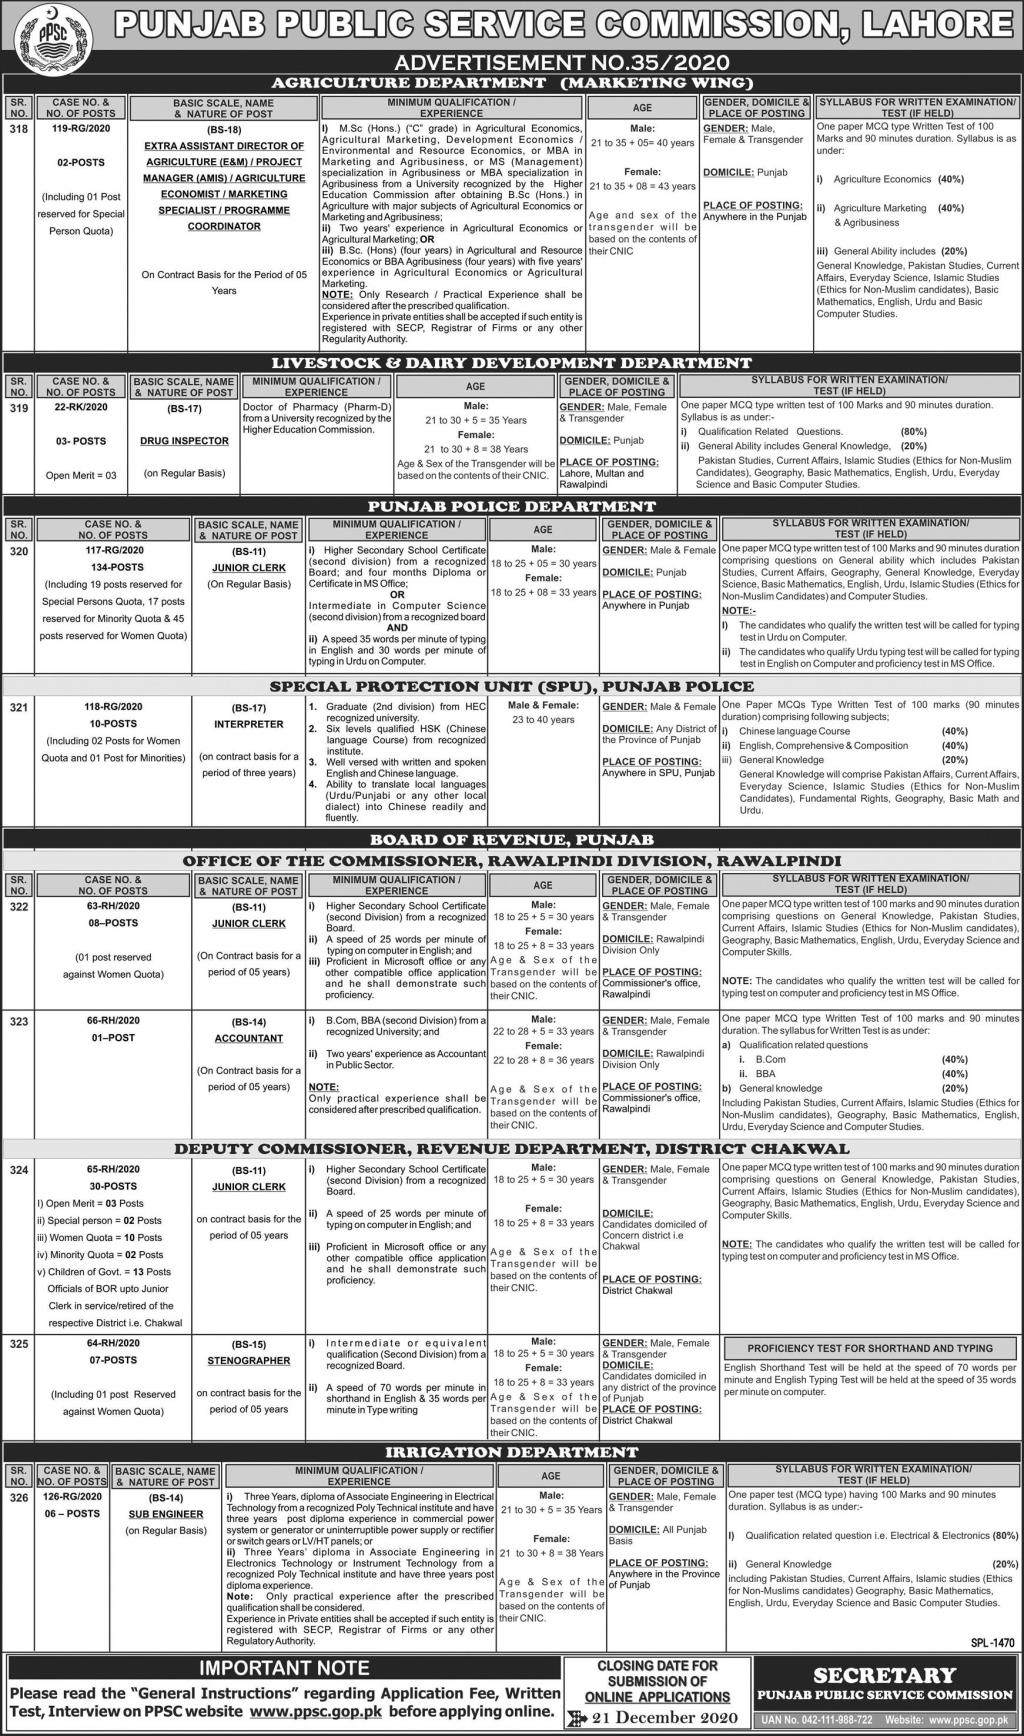 PPSC Advertisement No 35/2020 Online Apply